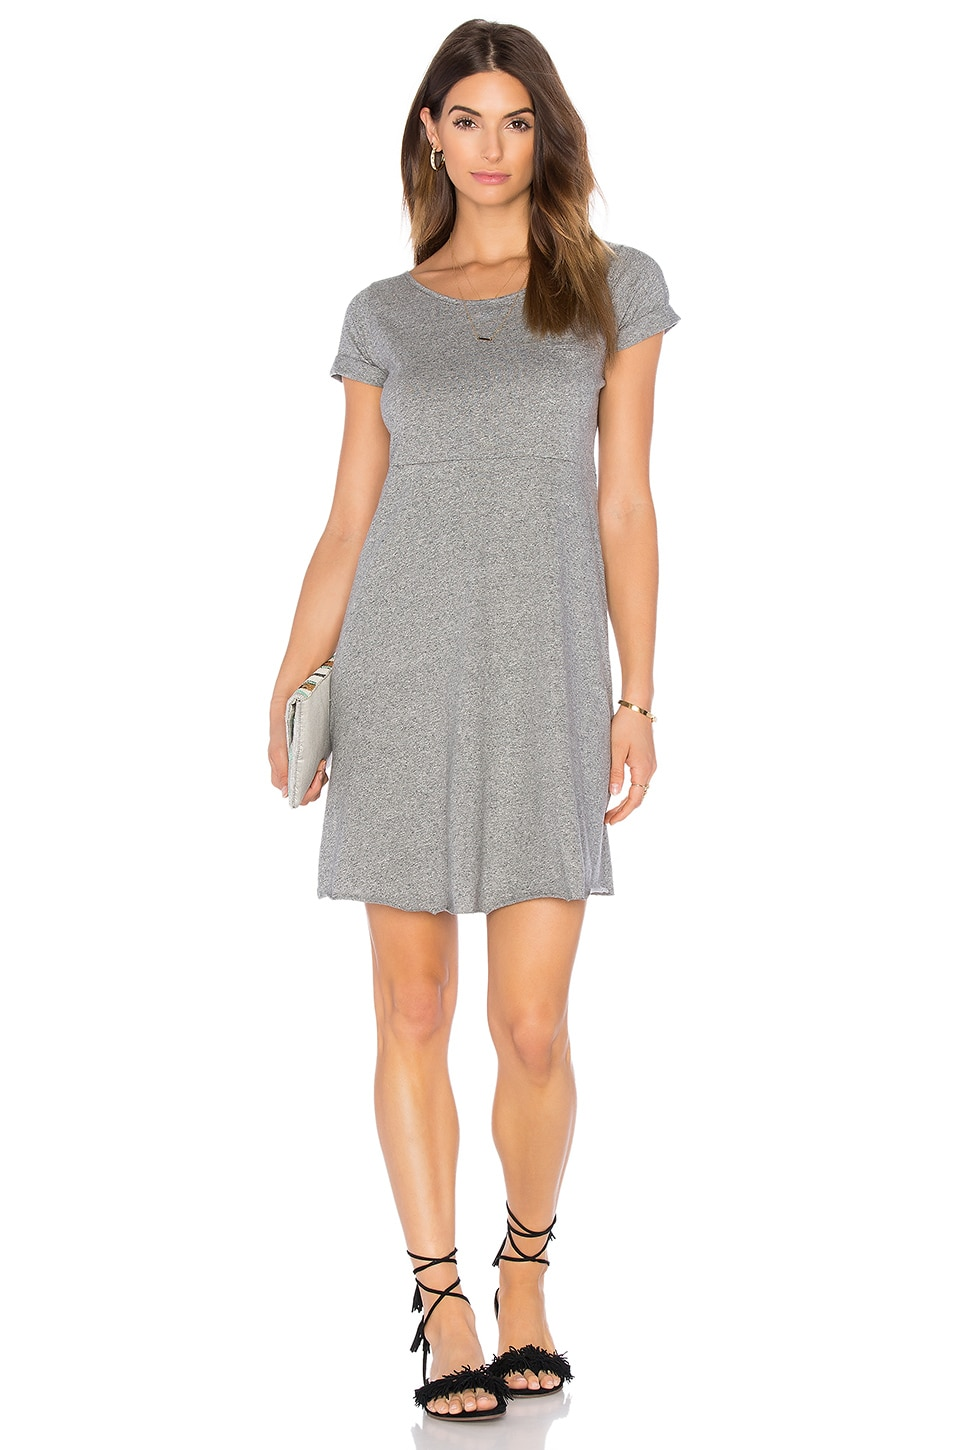 American Vintage Jilpow Dress in Heather Grey